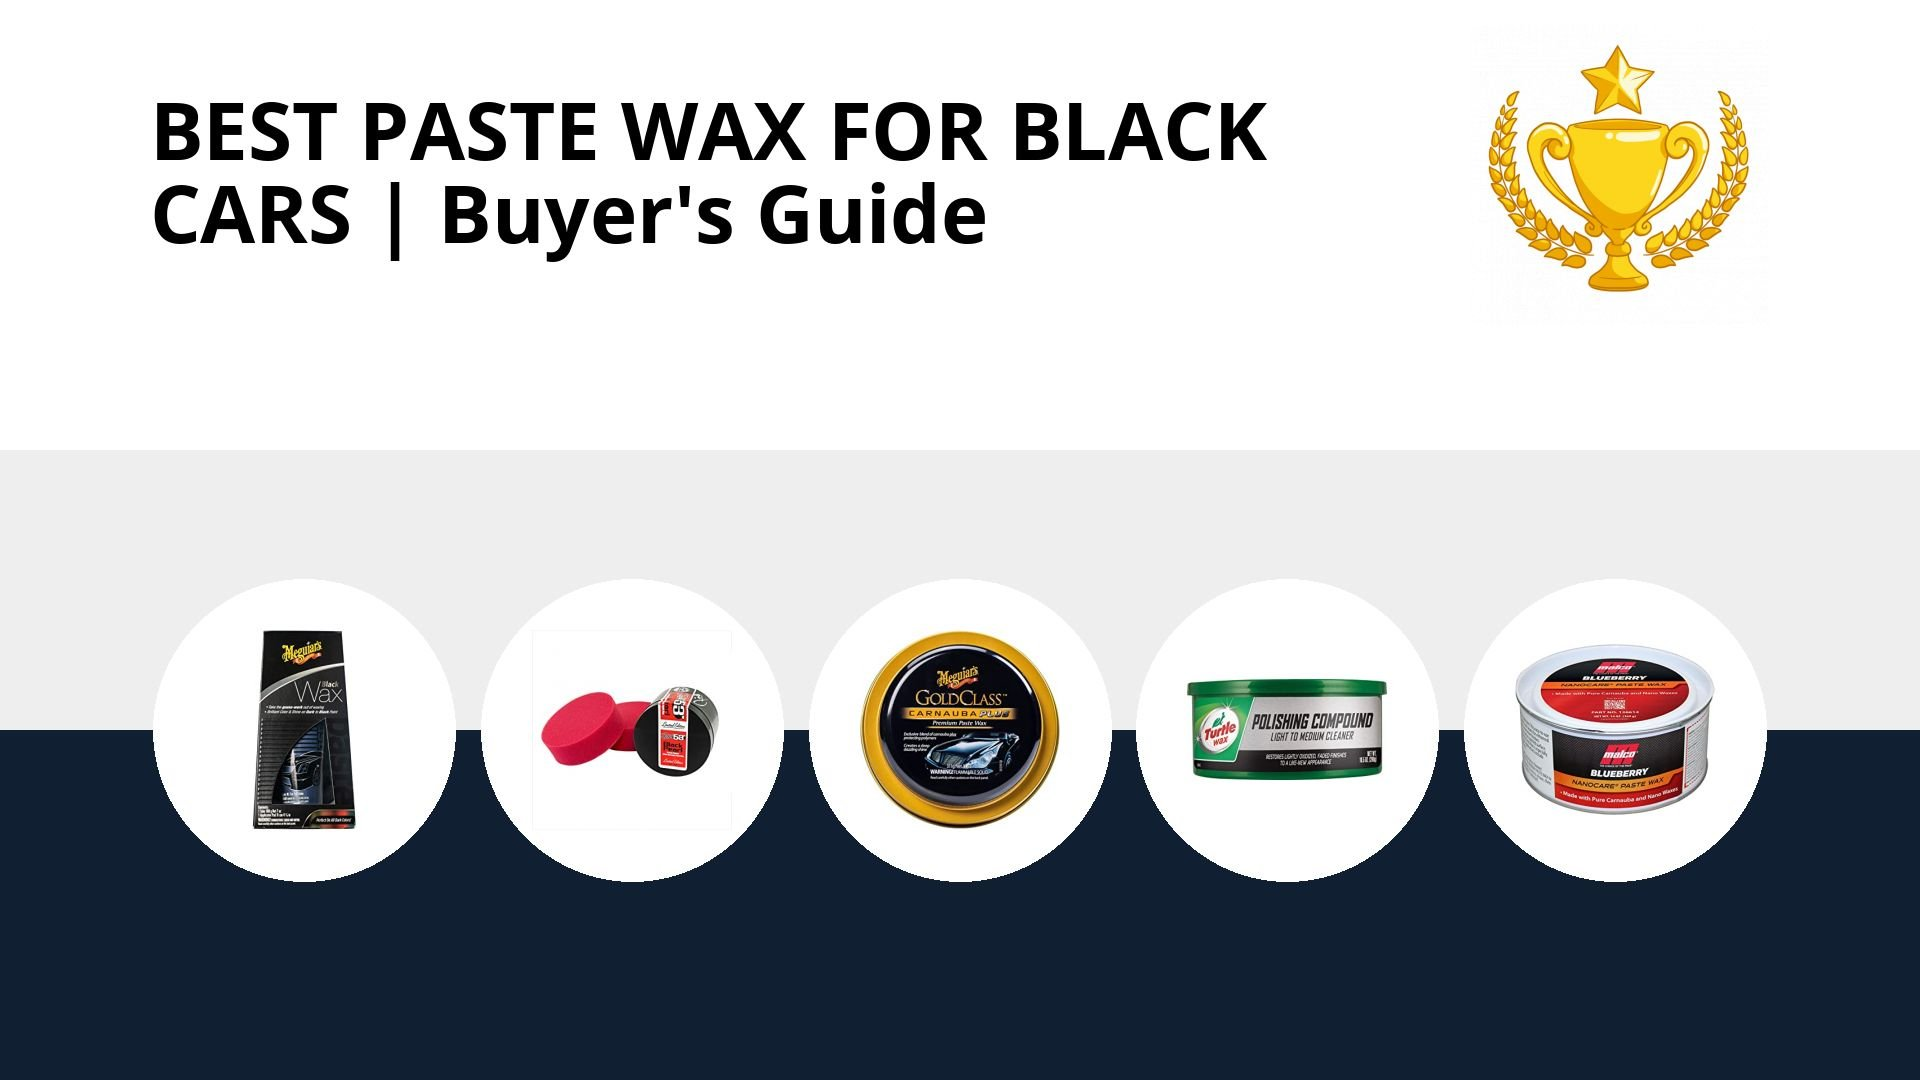 Best Paste Wax For Black Cars: image